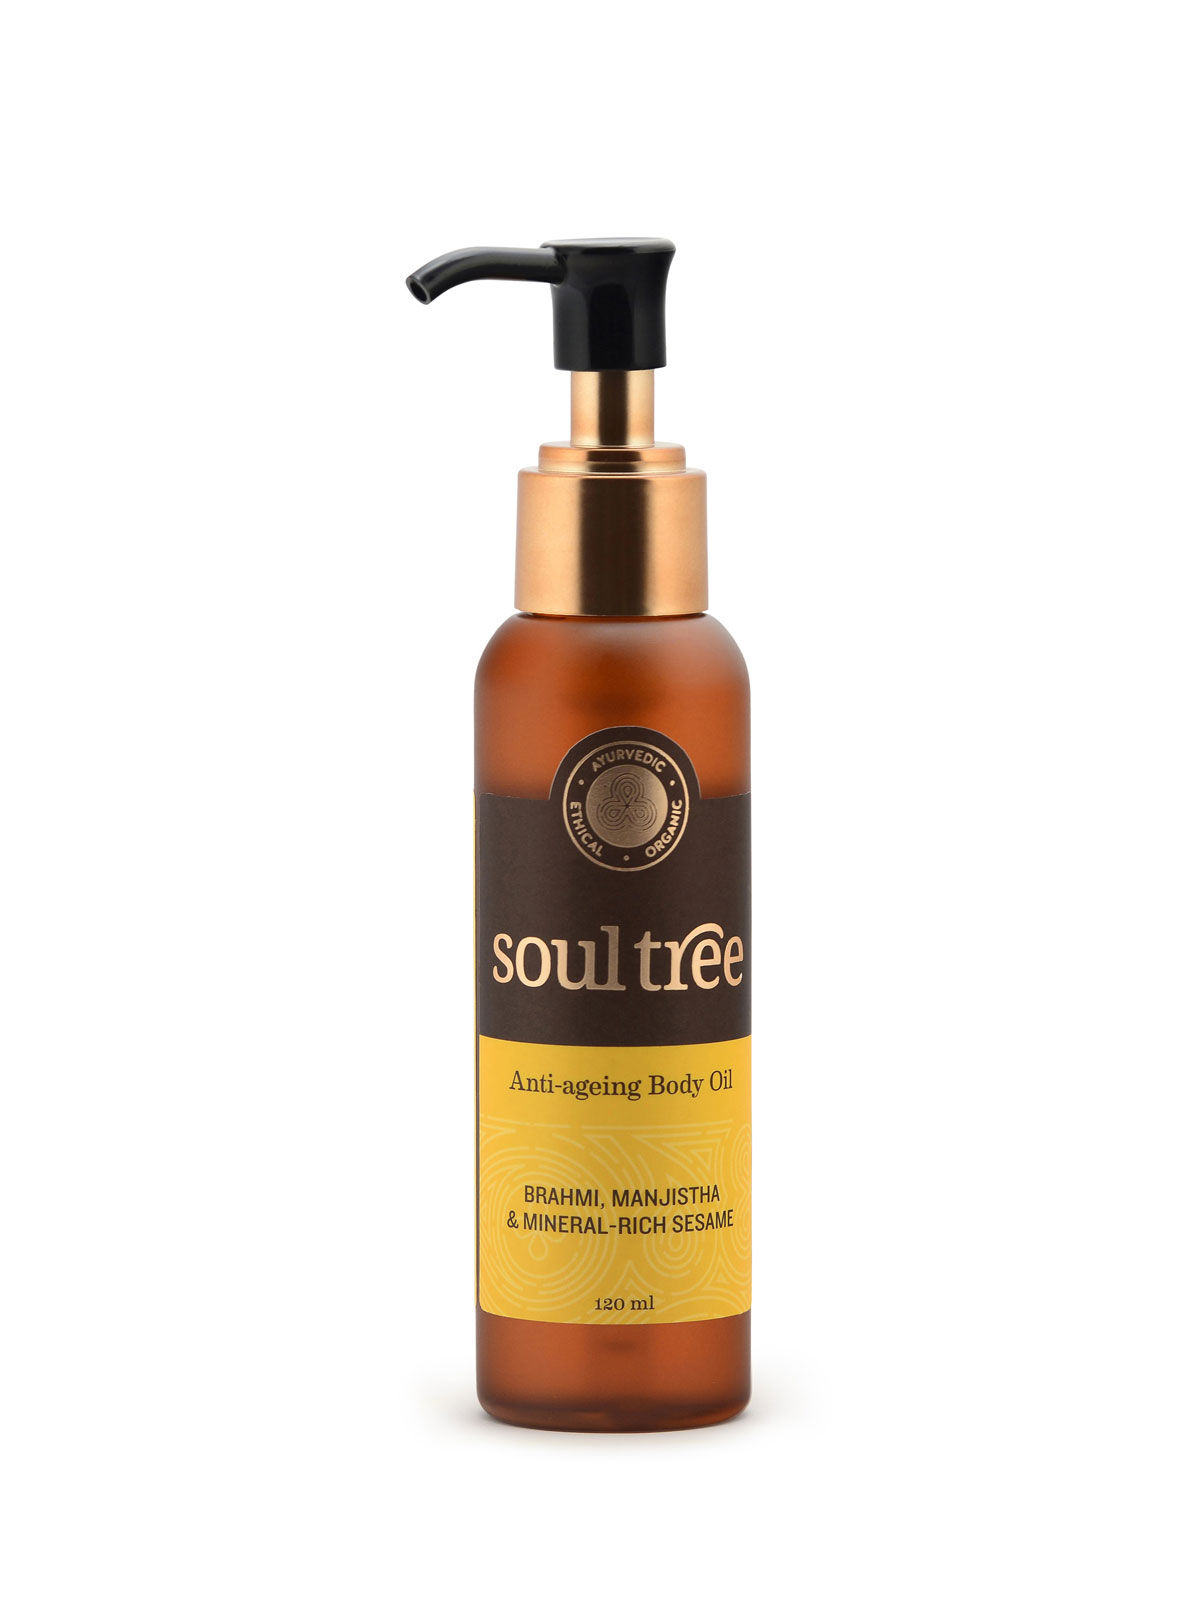 Soul Tree Anti-Ageing Body Oil